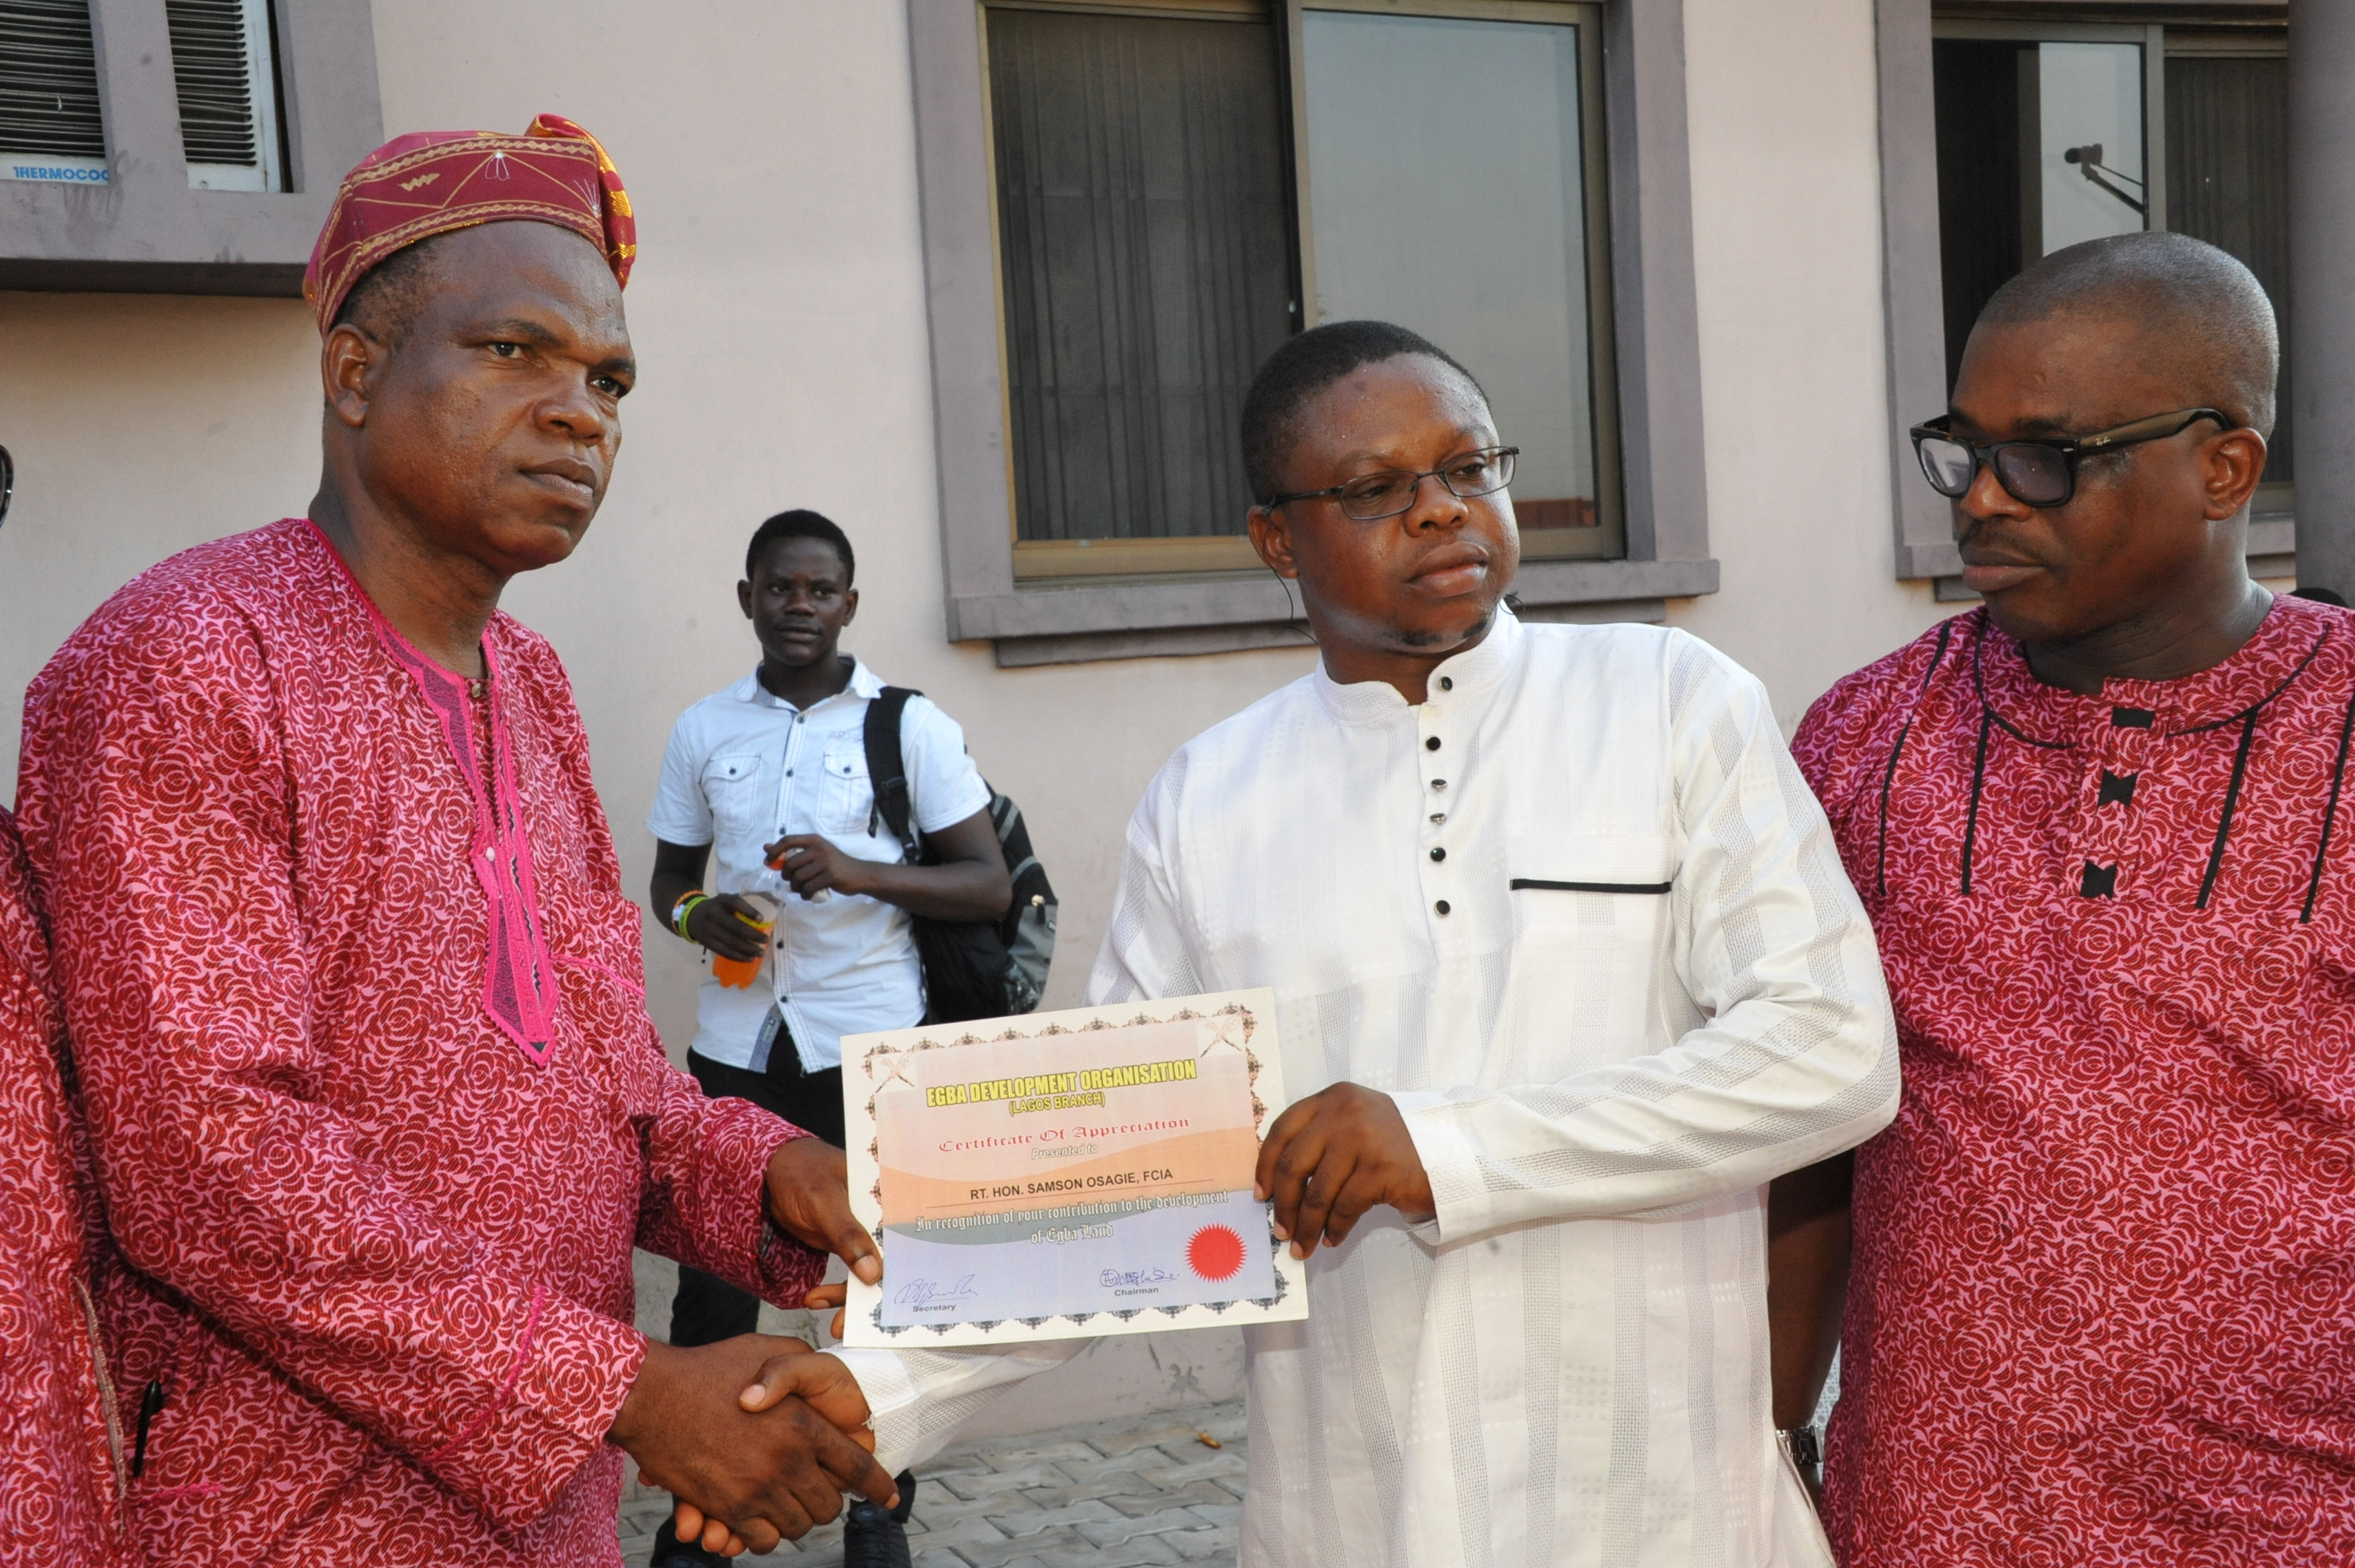 Dr. Okungbowa Osagie, (middle) receiving a special recognition award on behalf of Hon. Samson Osagie, from Mr. Victor Igbinoba Secretary of Egba Development Organisation, Lagos Branch, with them is Mr. Charles Igbinidu, the Public Relations Officer